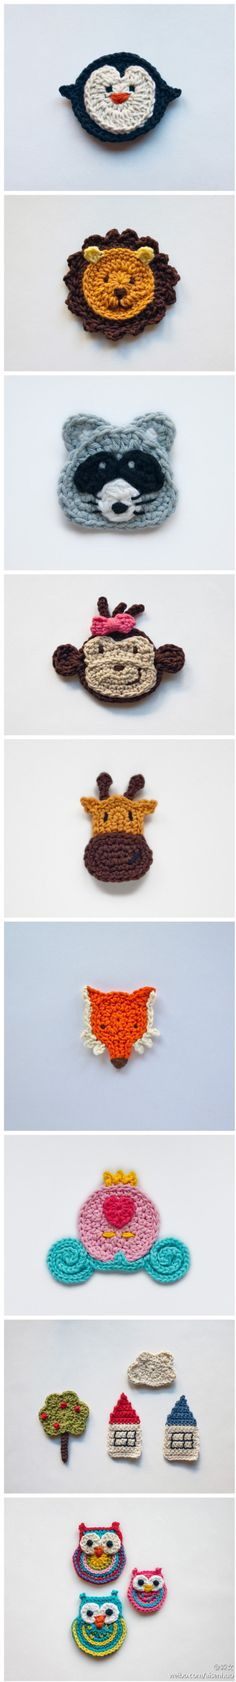 Crochet inspiration cute animal faces.